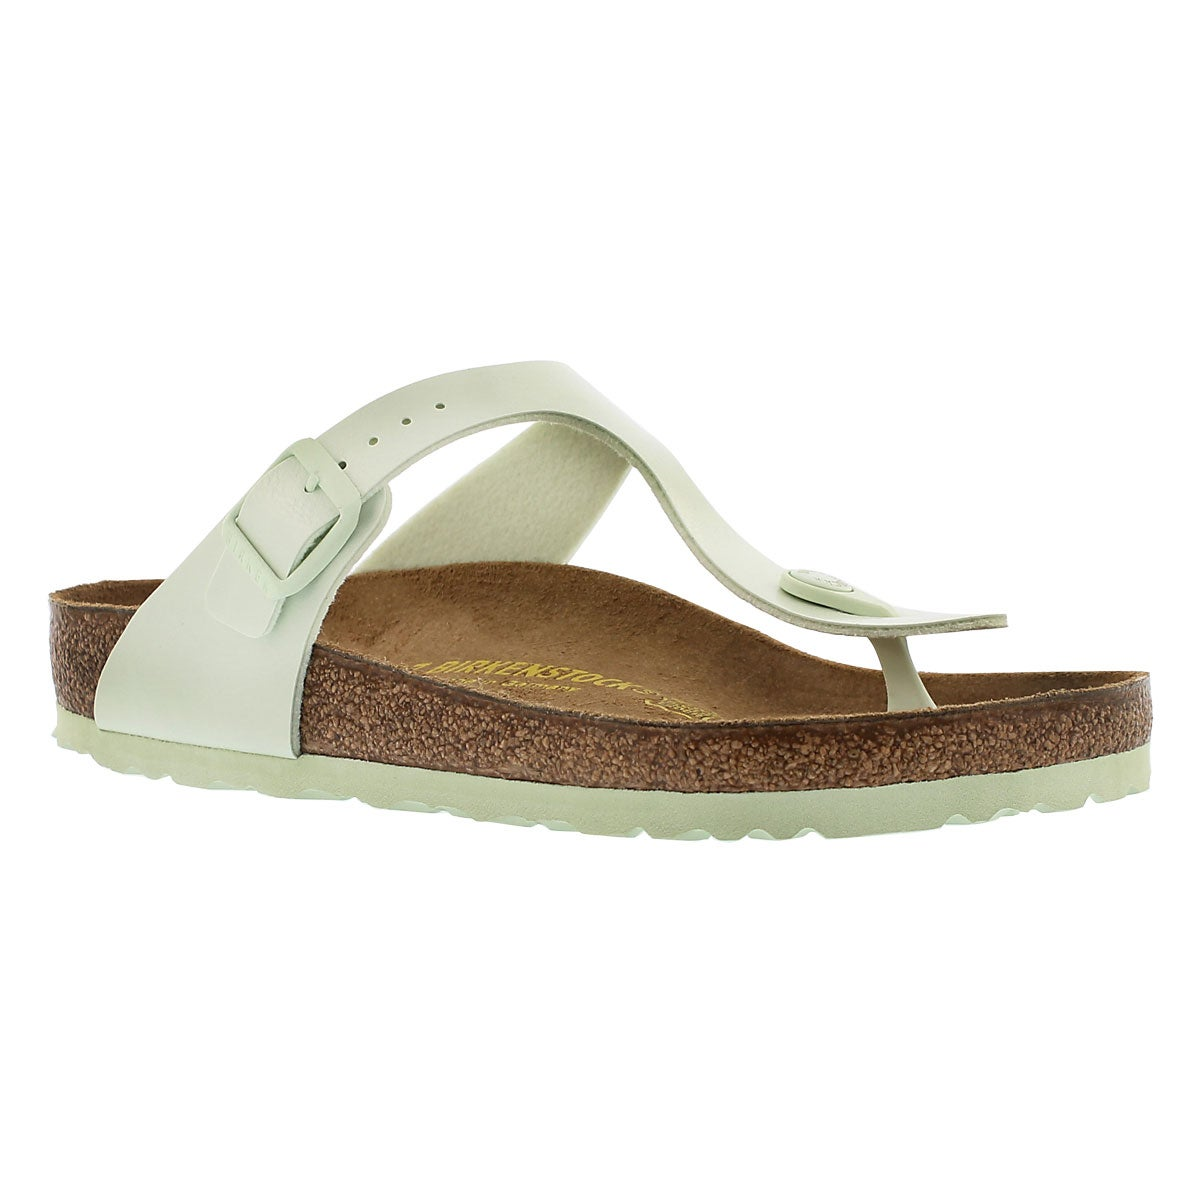 Women's GIZEH mint thong sandals